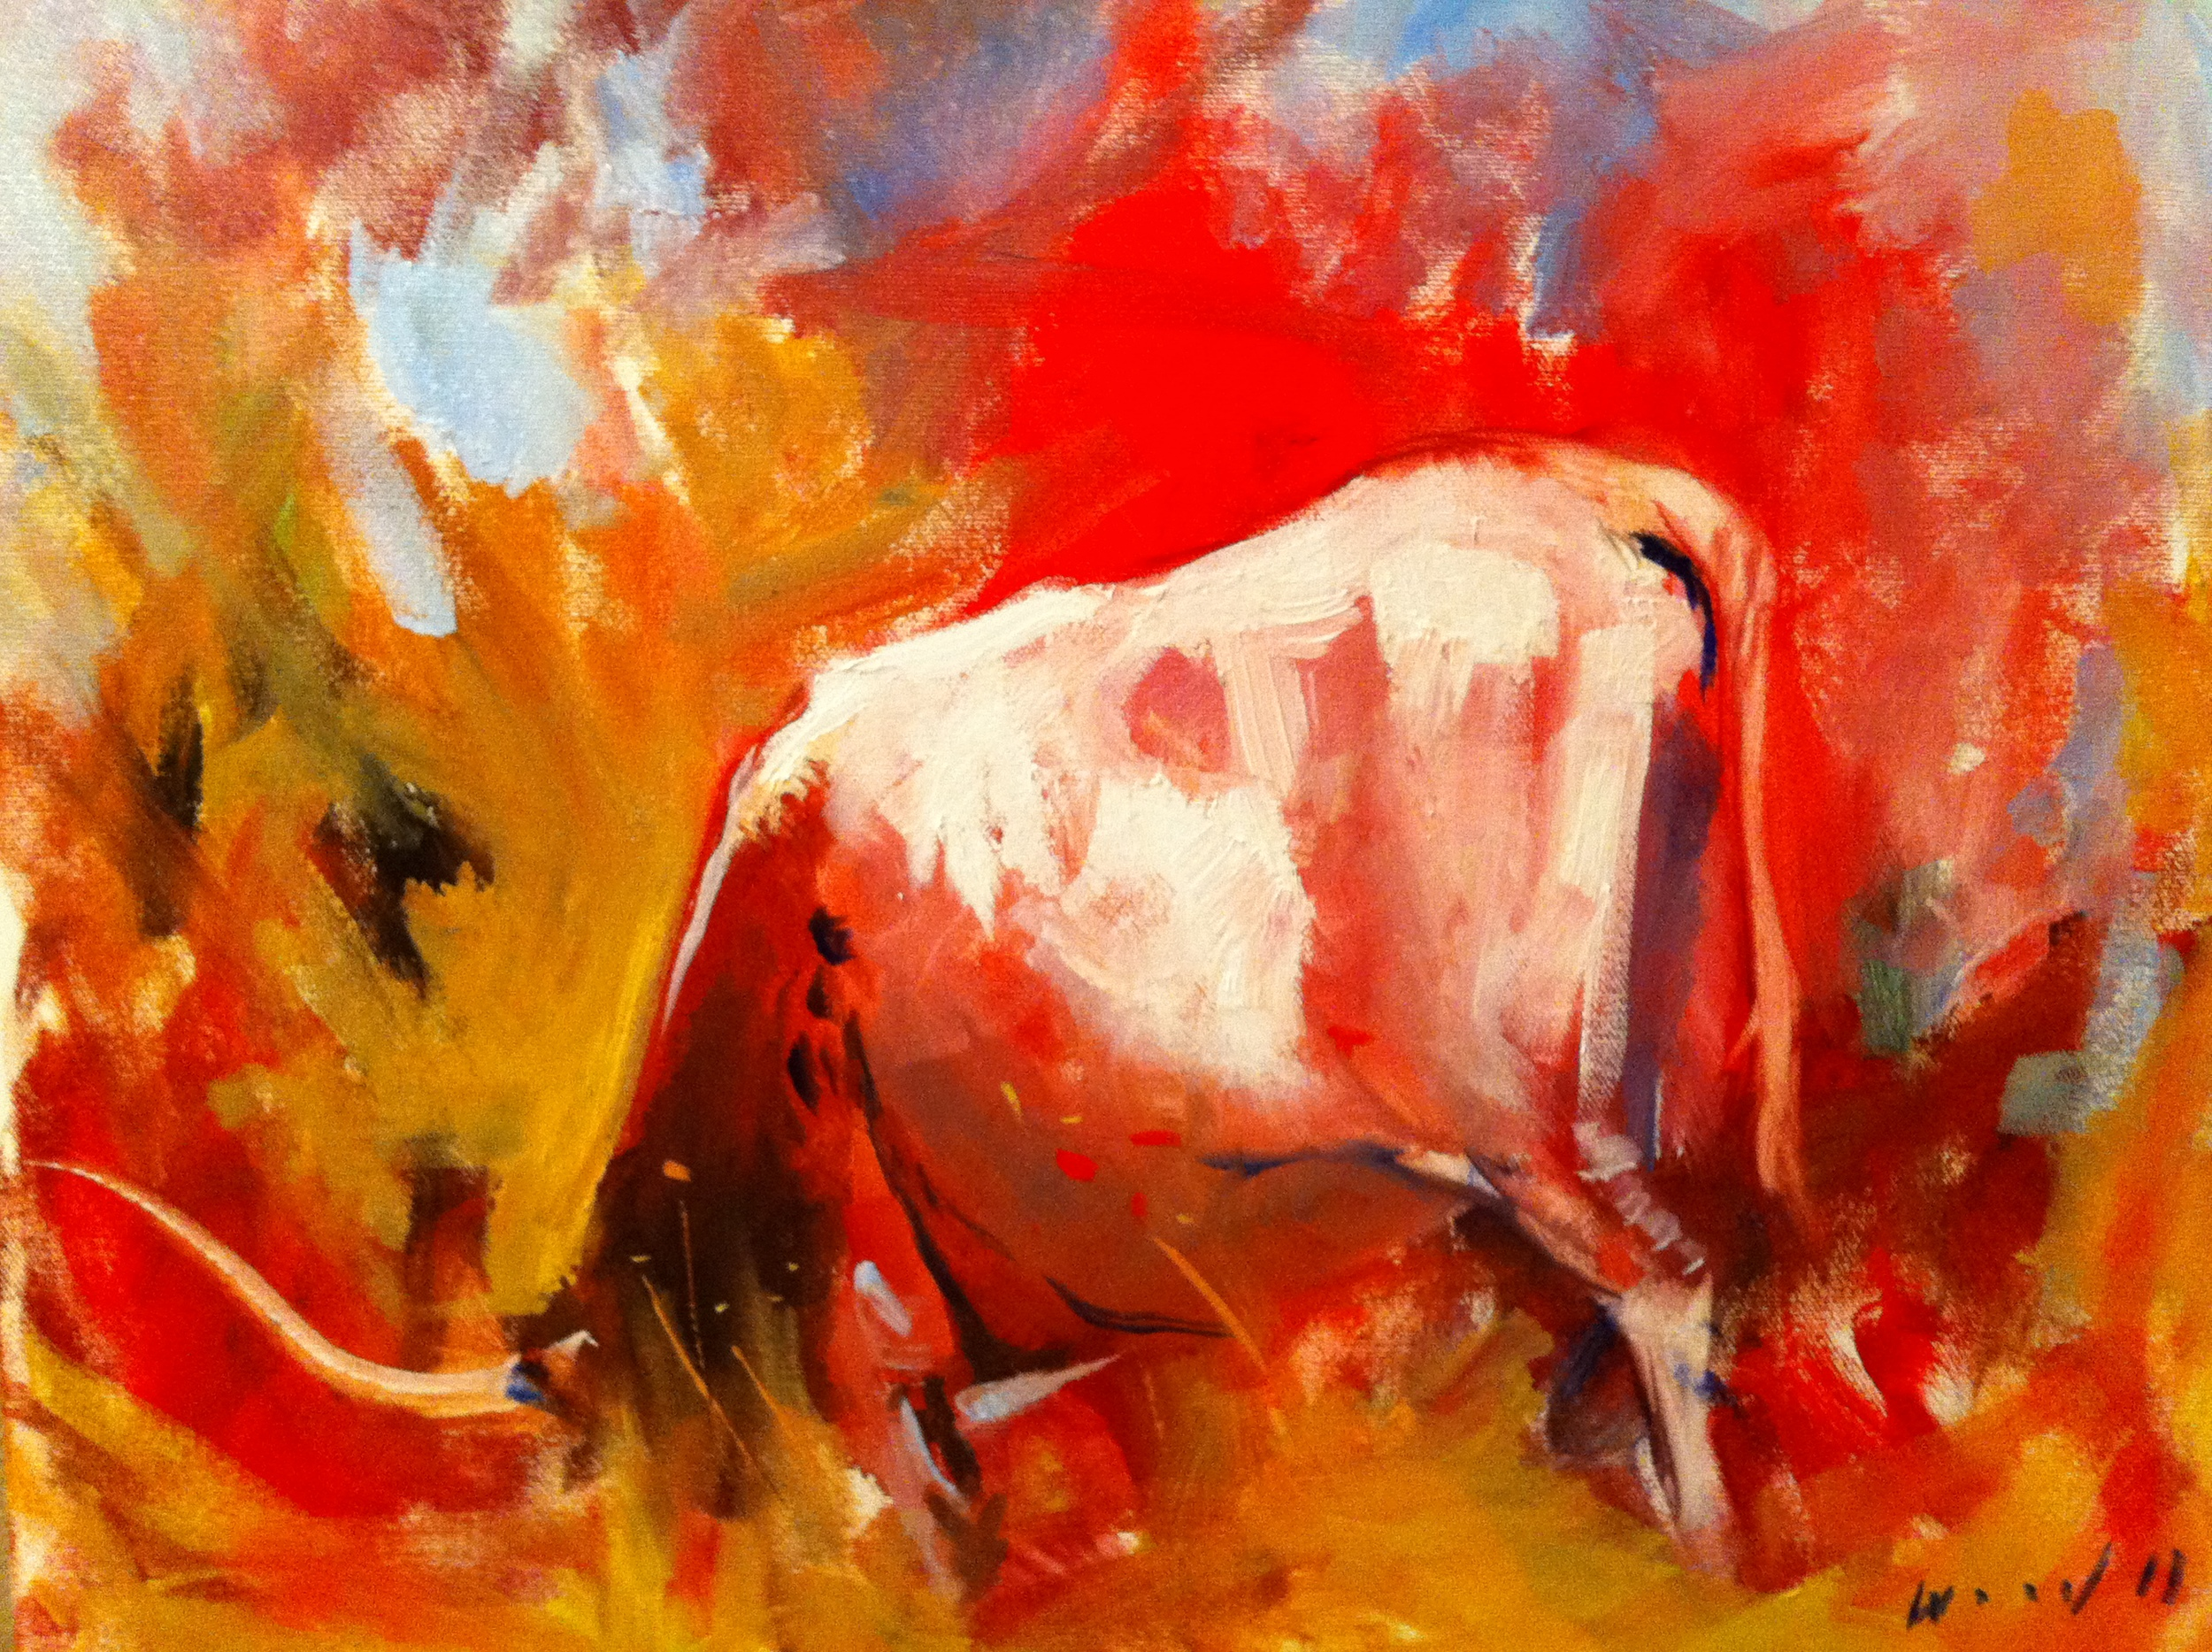 Darin Wood On Fire 16X20 Oil Canvas.JPG